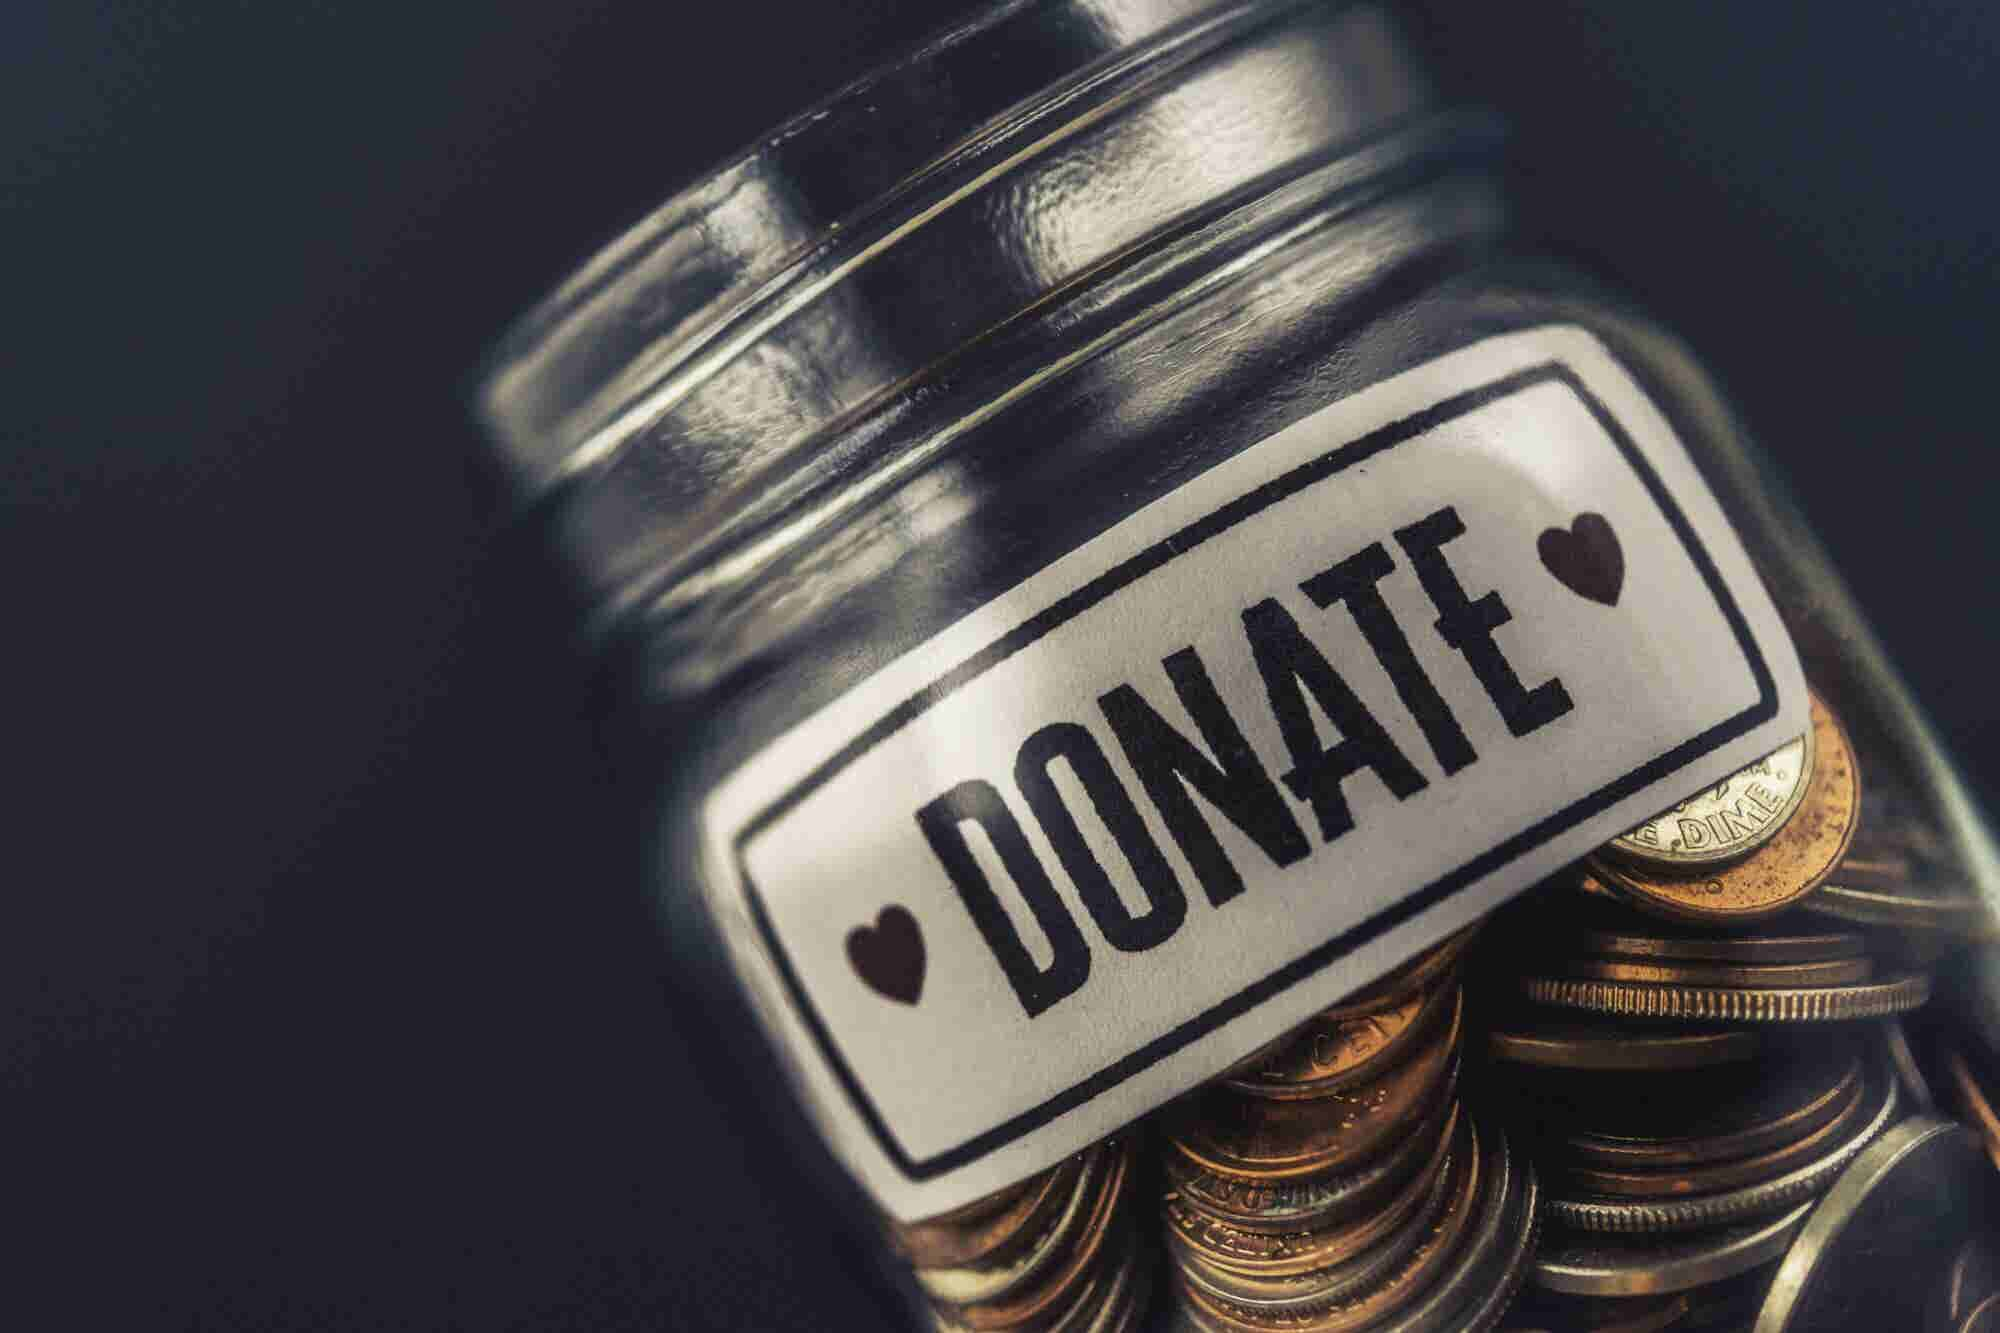 Are Your Charitable Donations Getting to the Right People? Here's How...